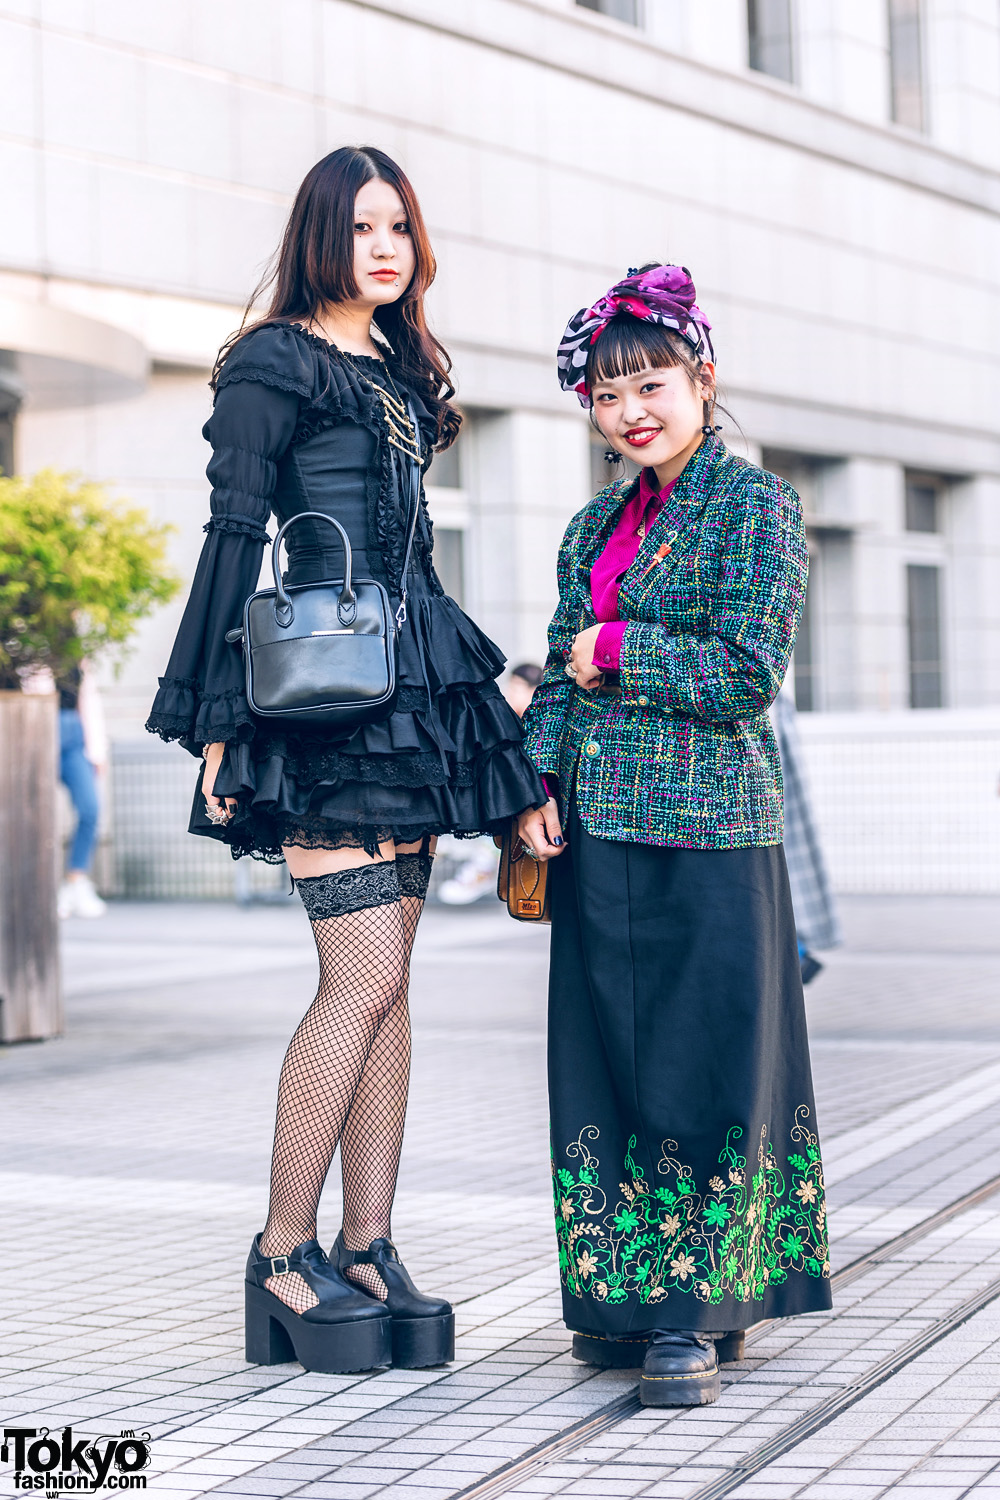 Colorful Head Scarf, Baby The Stars Shine Bright Dress, Kinji Knit Blazer, RRR Shirt, Iro Wo Matoue, Vivienne Westwood, Satchel Bags & Dr. Martens